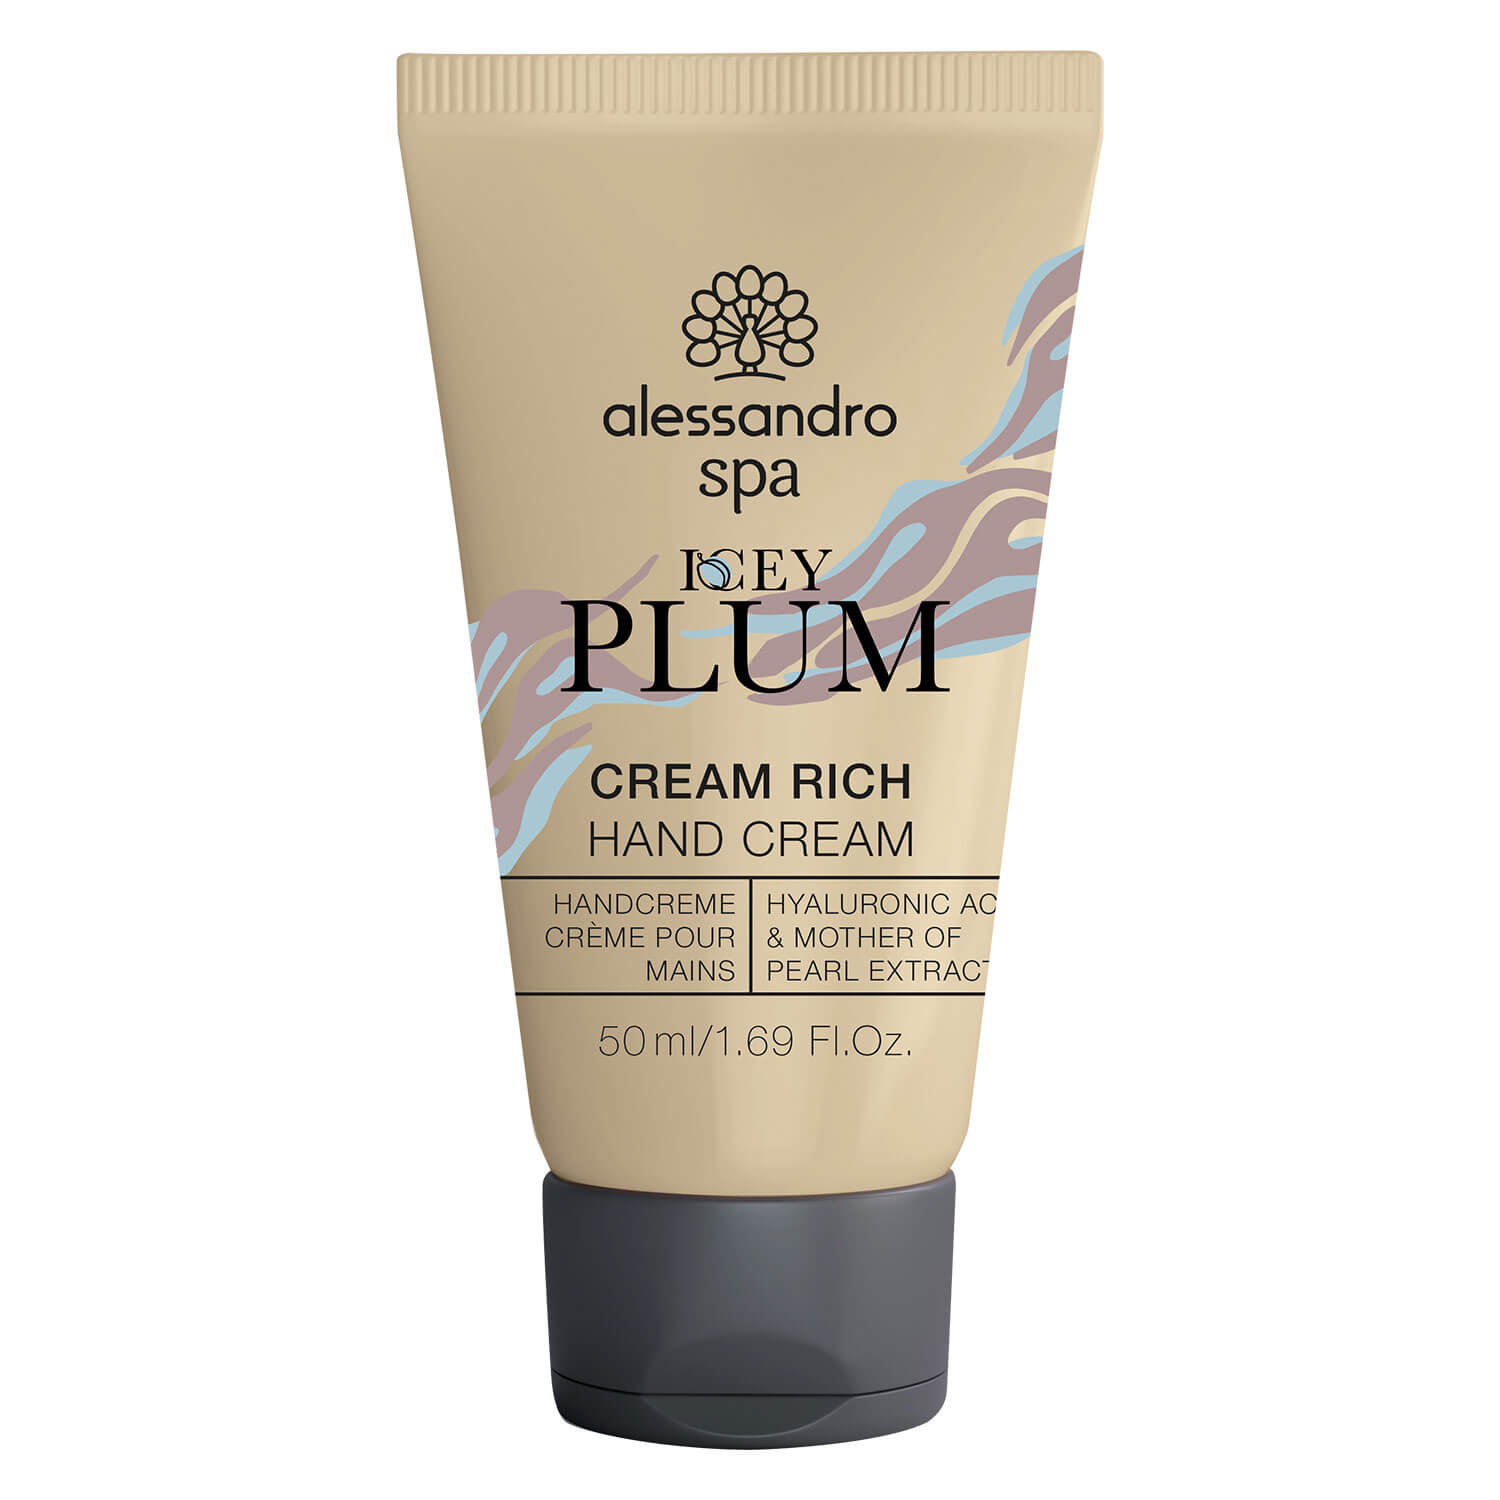 Alessandro Spa - Cream Rich Hand Cream Icey Plum